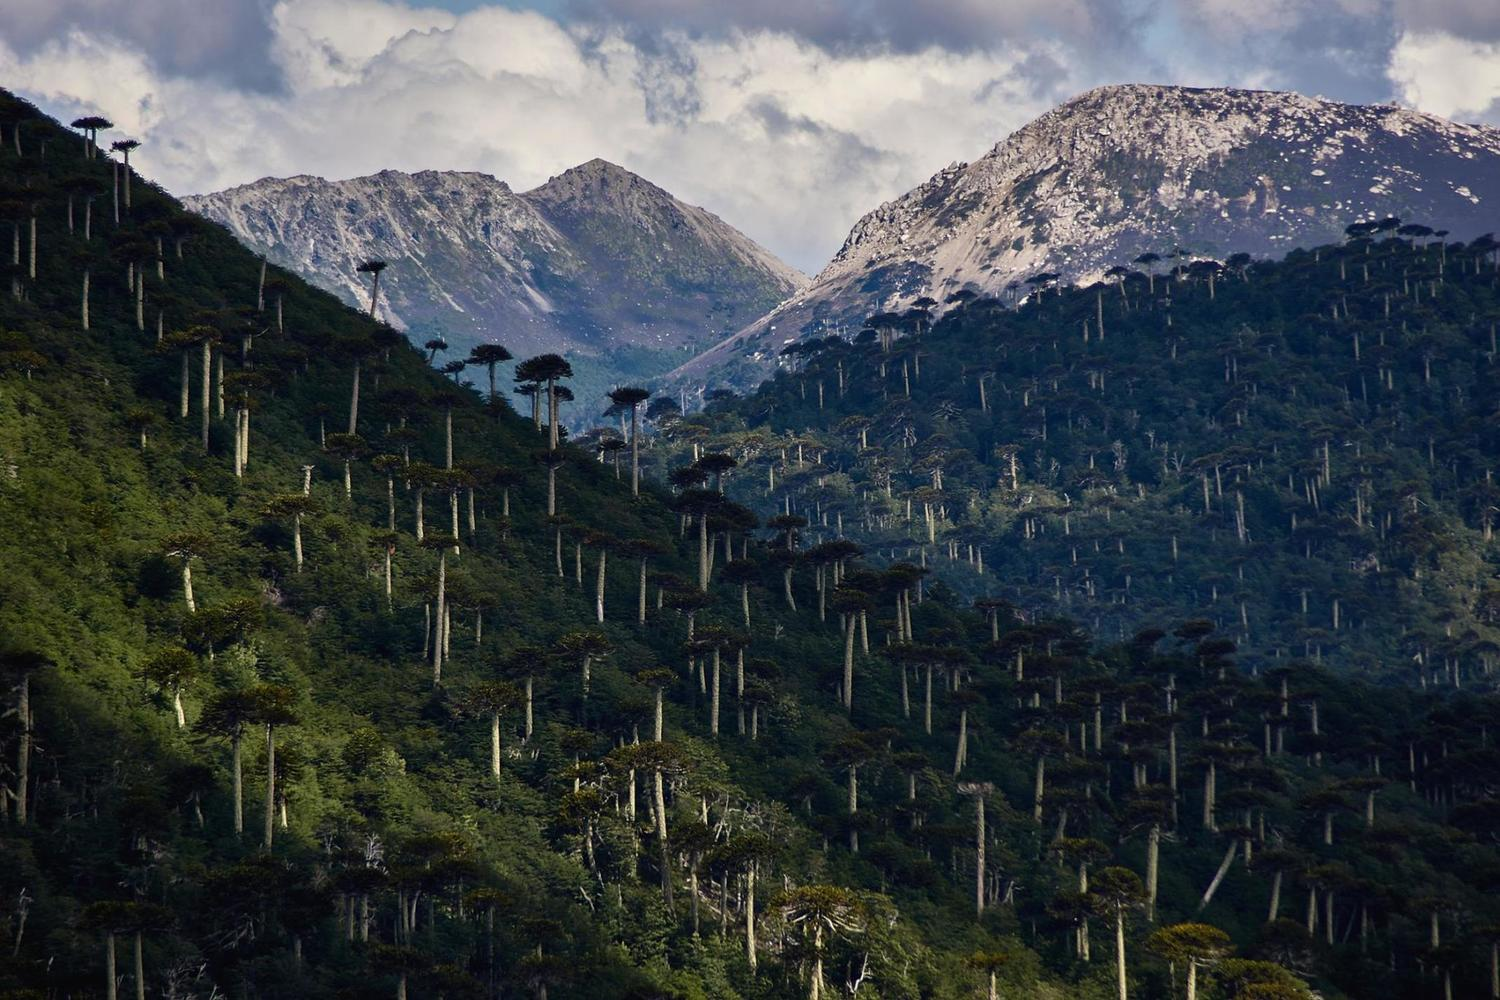 Monkey puzzle trees dotted through the Conguillio National Park